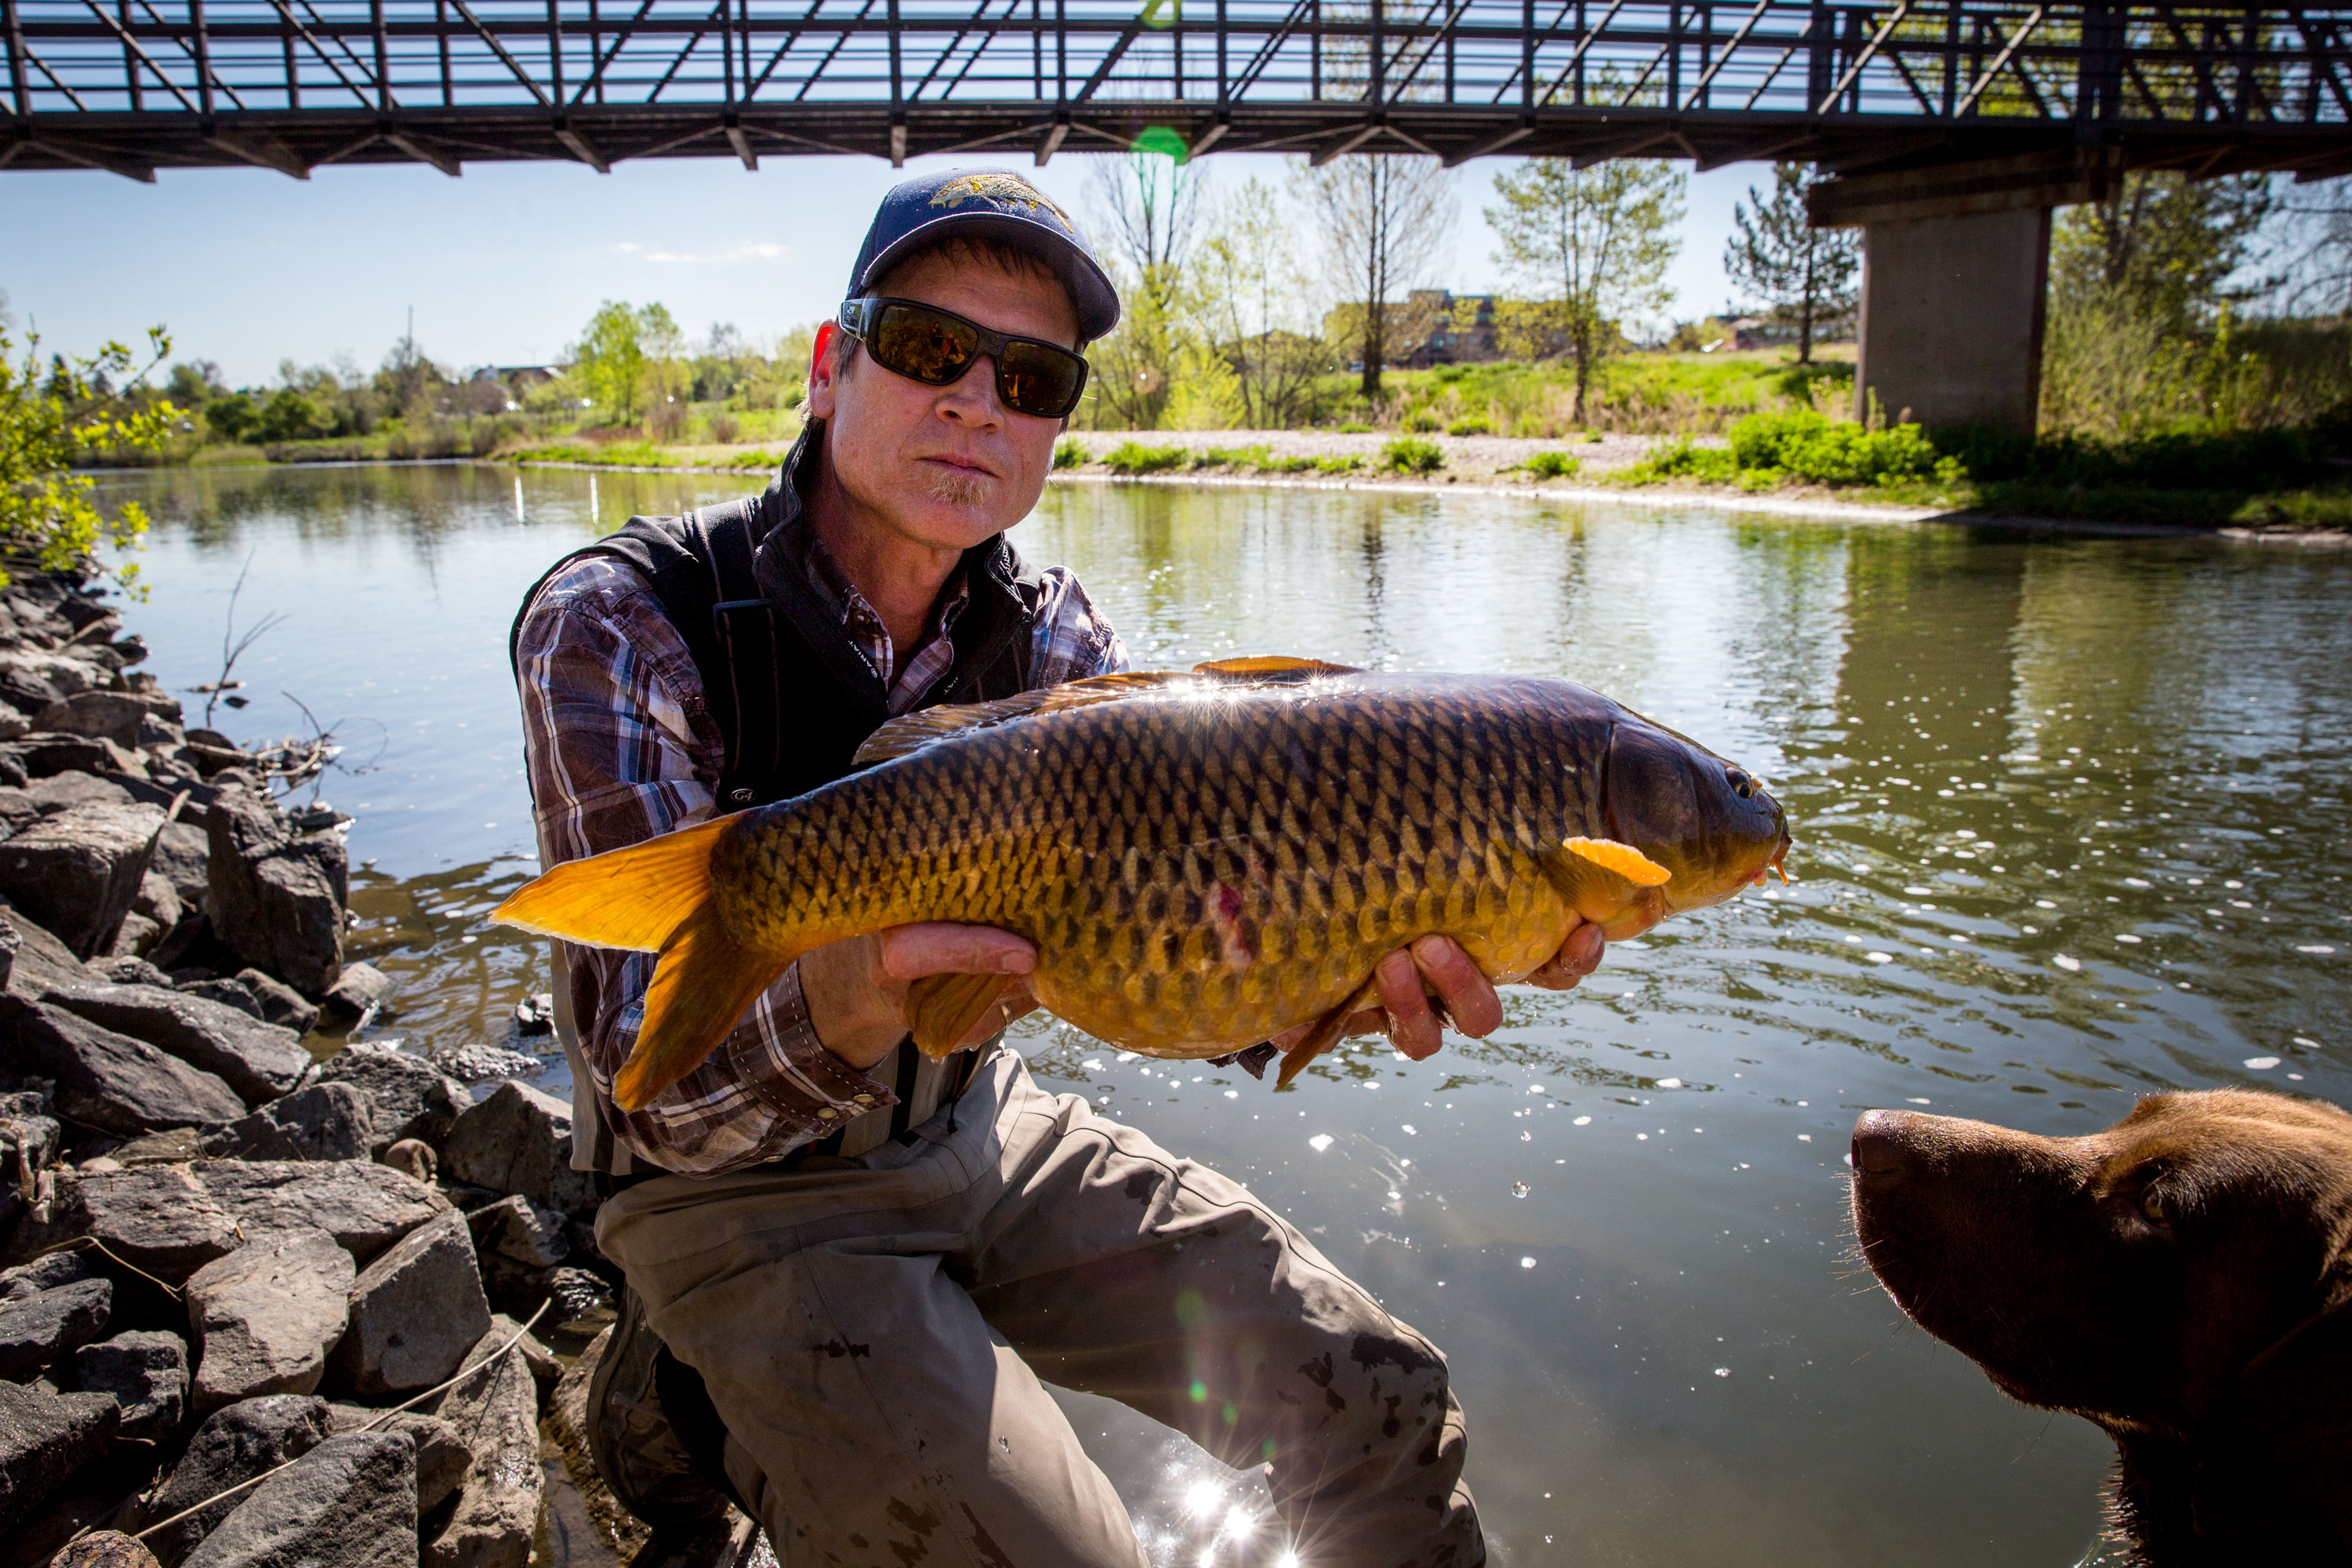 <p>Dan Lundahlhandles a carp he caught Monday morning May 13, 2019 on the South Plattein Littleton, while his dog Ruger looks on.</p>